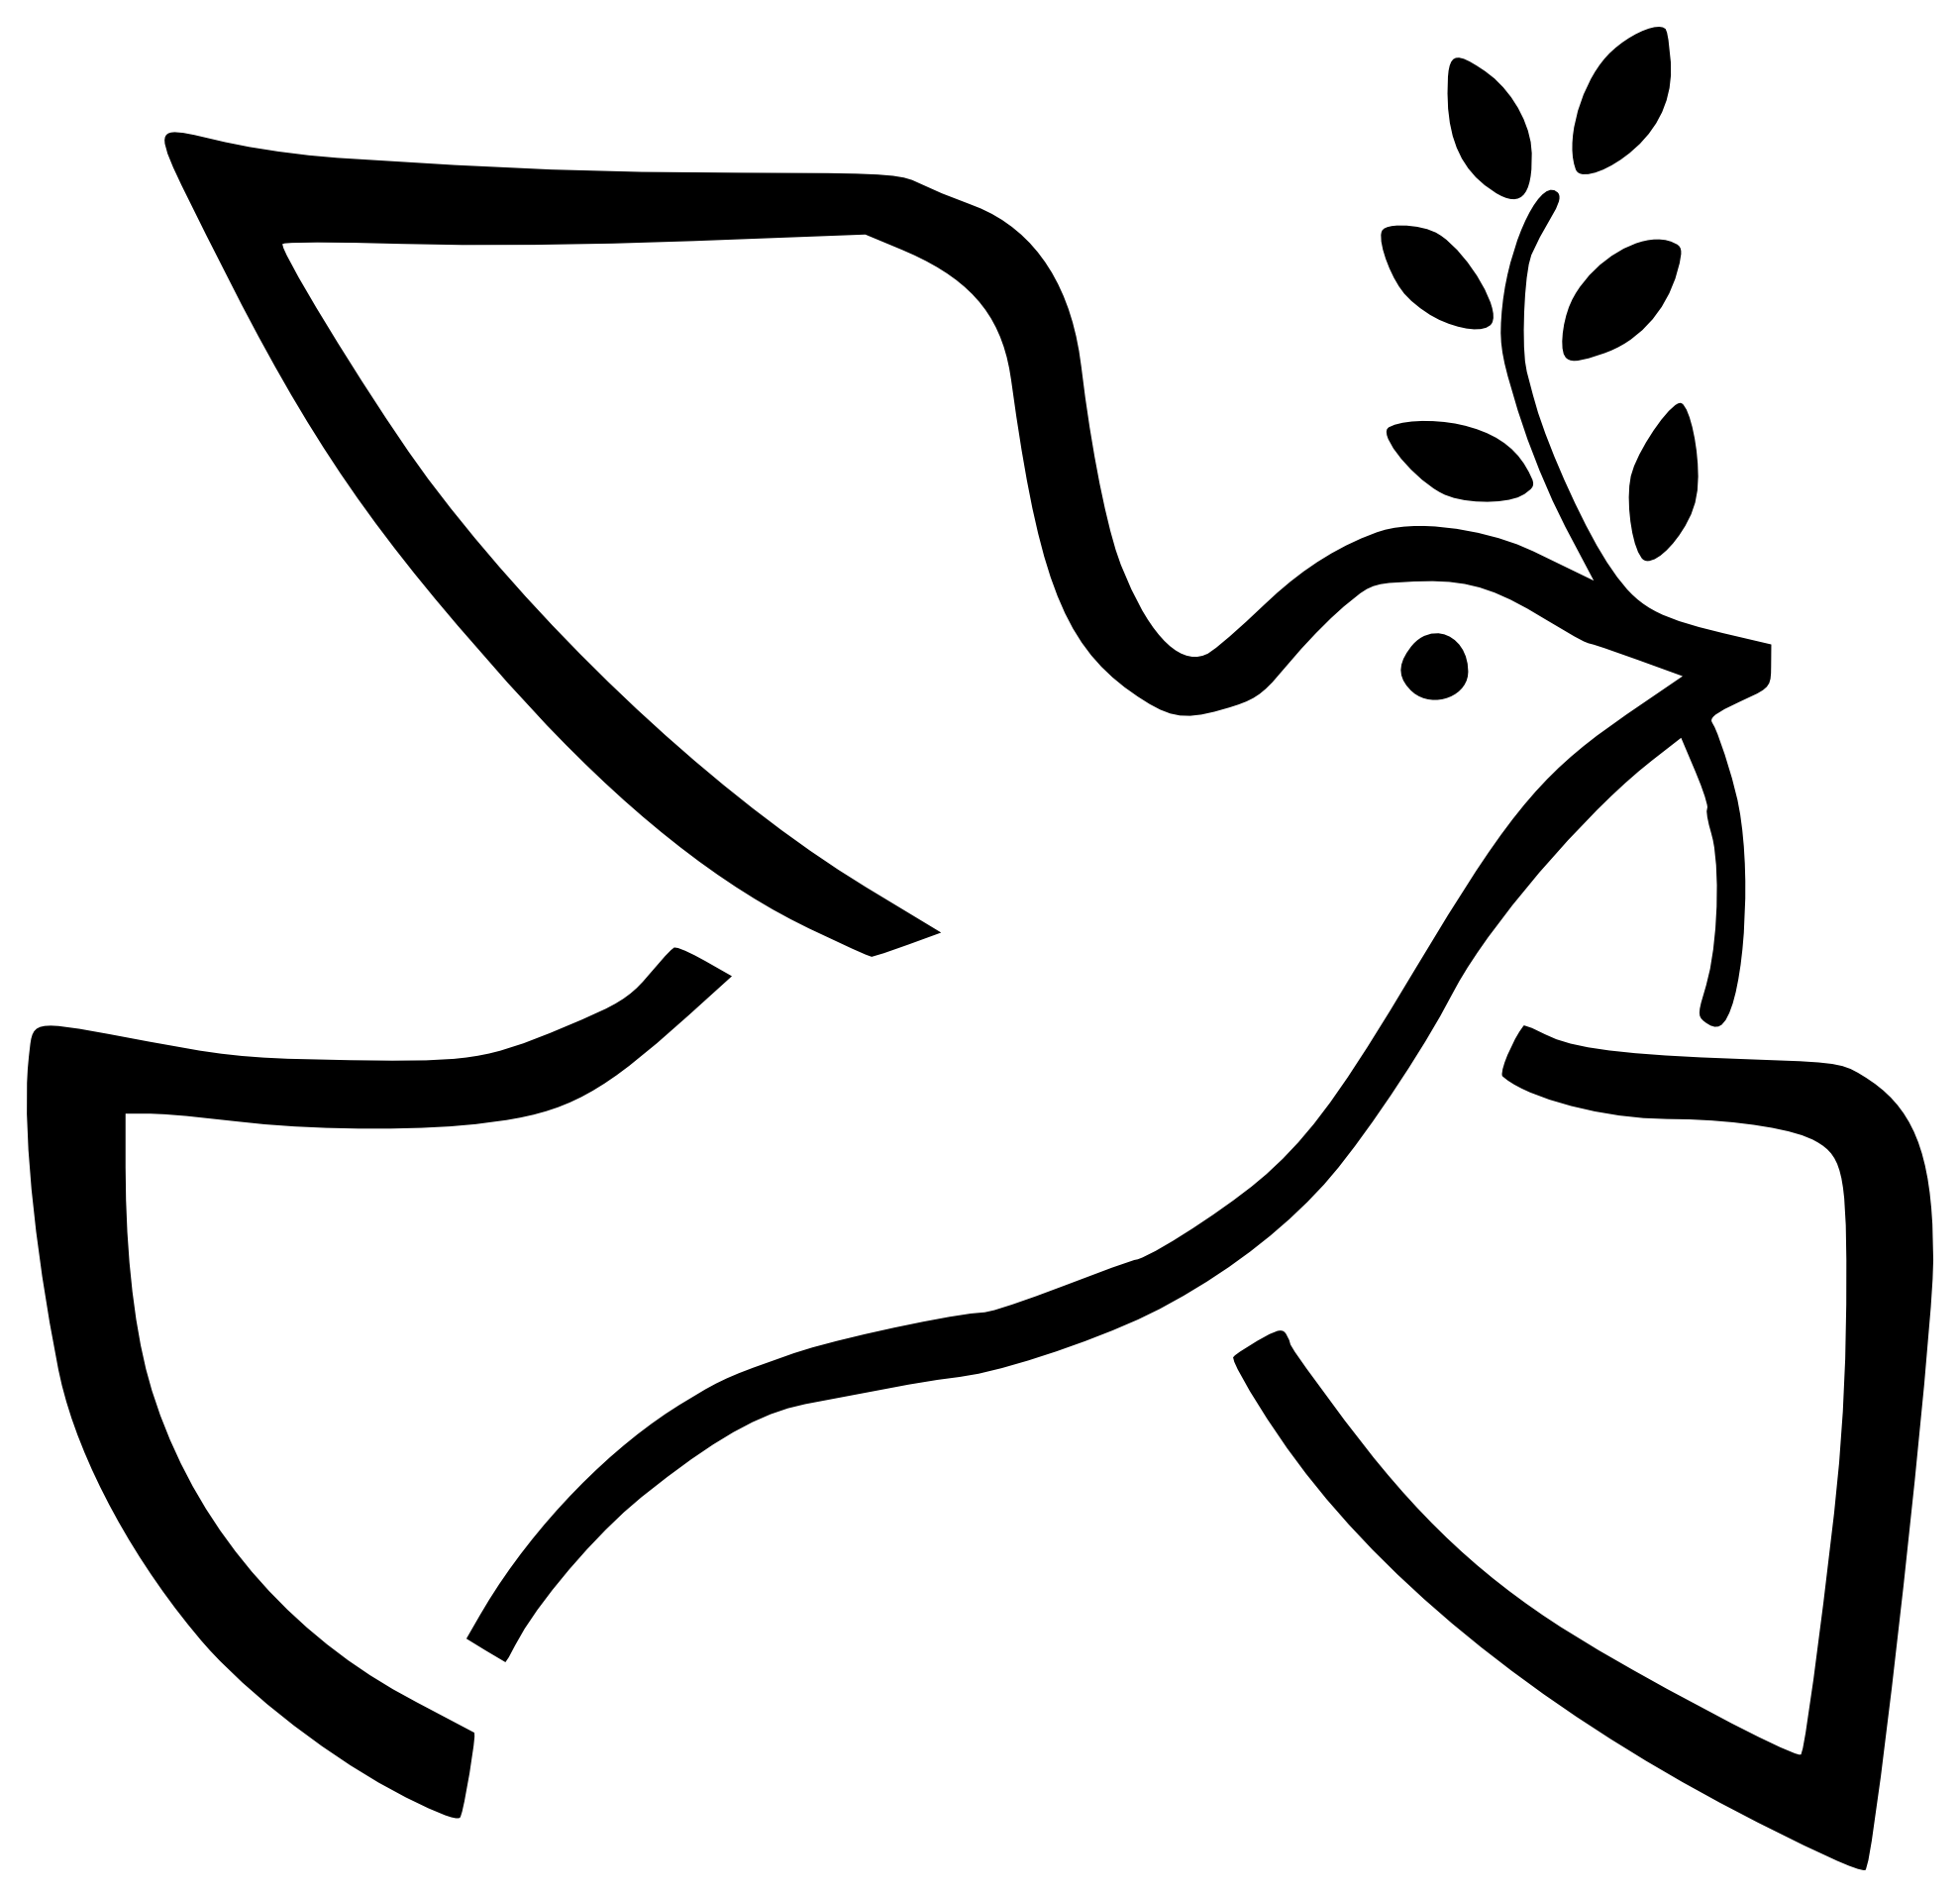 Cross and faith black and white clipart image free download Dove black and white clipart - ClipartFest | ideas - peace dove ... image free download